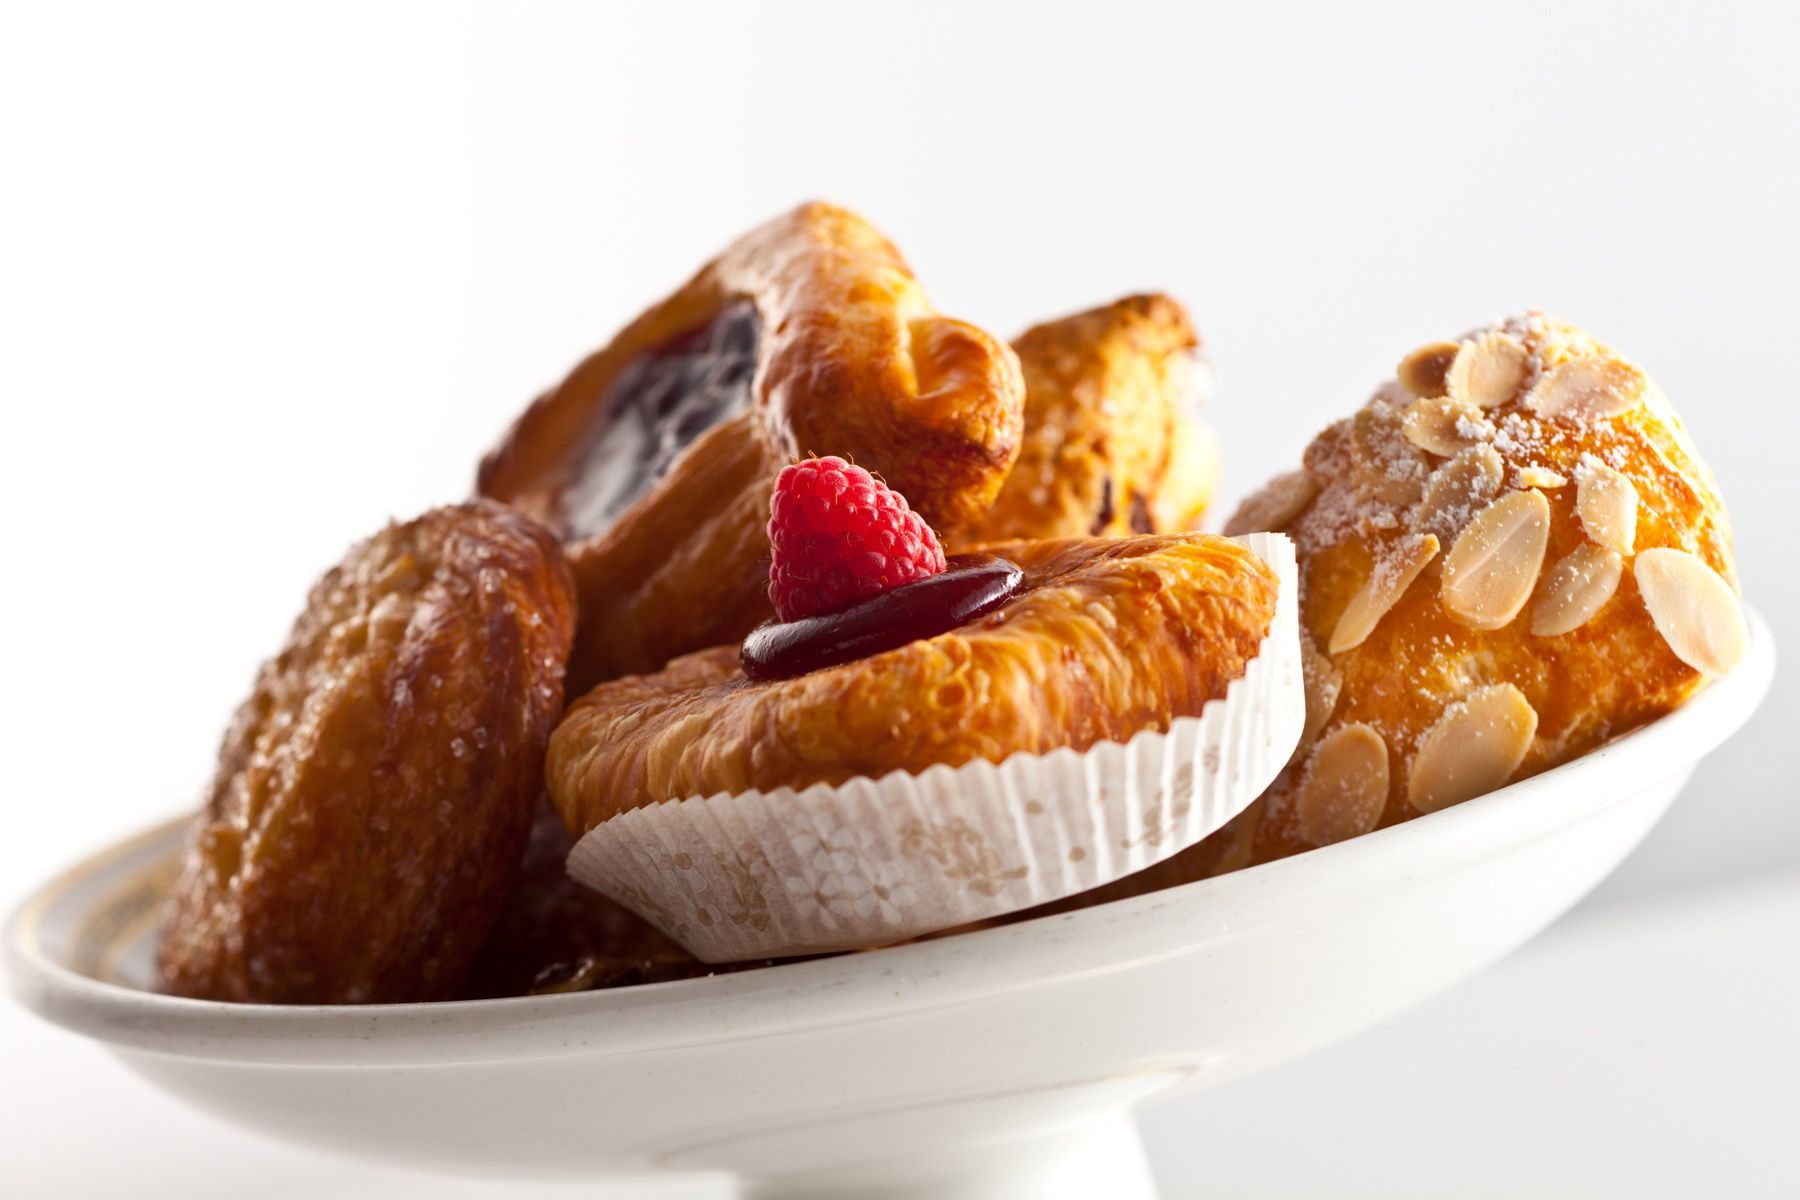 Pastries-on-platter-Jessica-Weiss-Union-League-of-Chicago.jpg